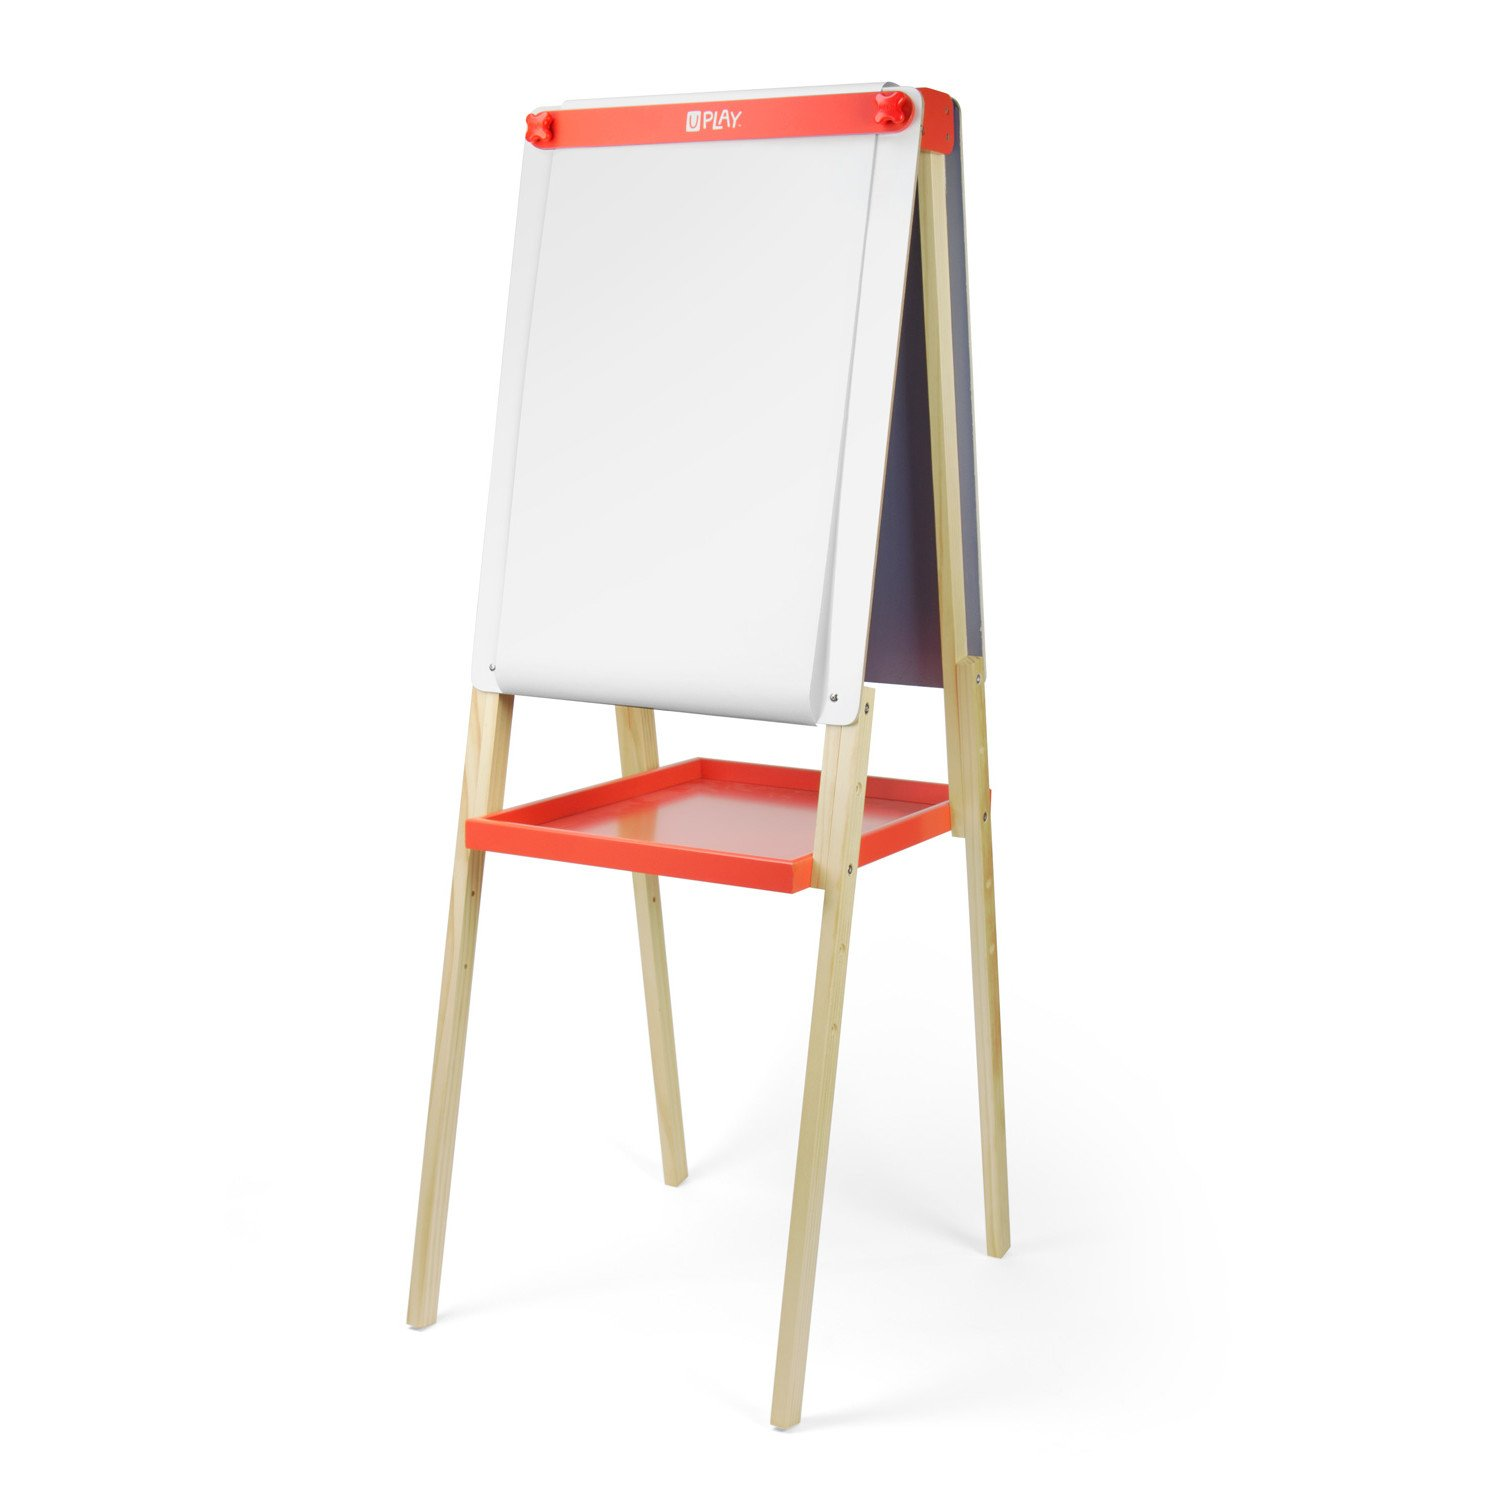 cra z art 3 in 1 artist easel assembly instructions